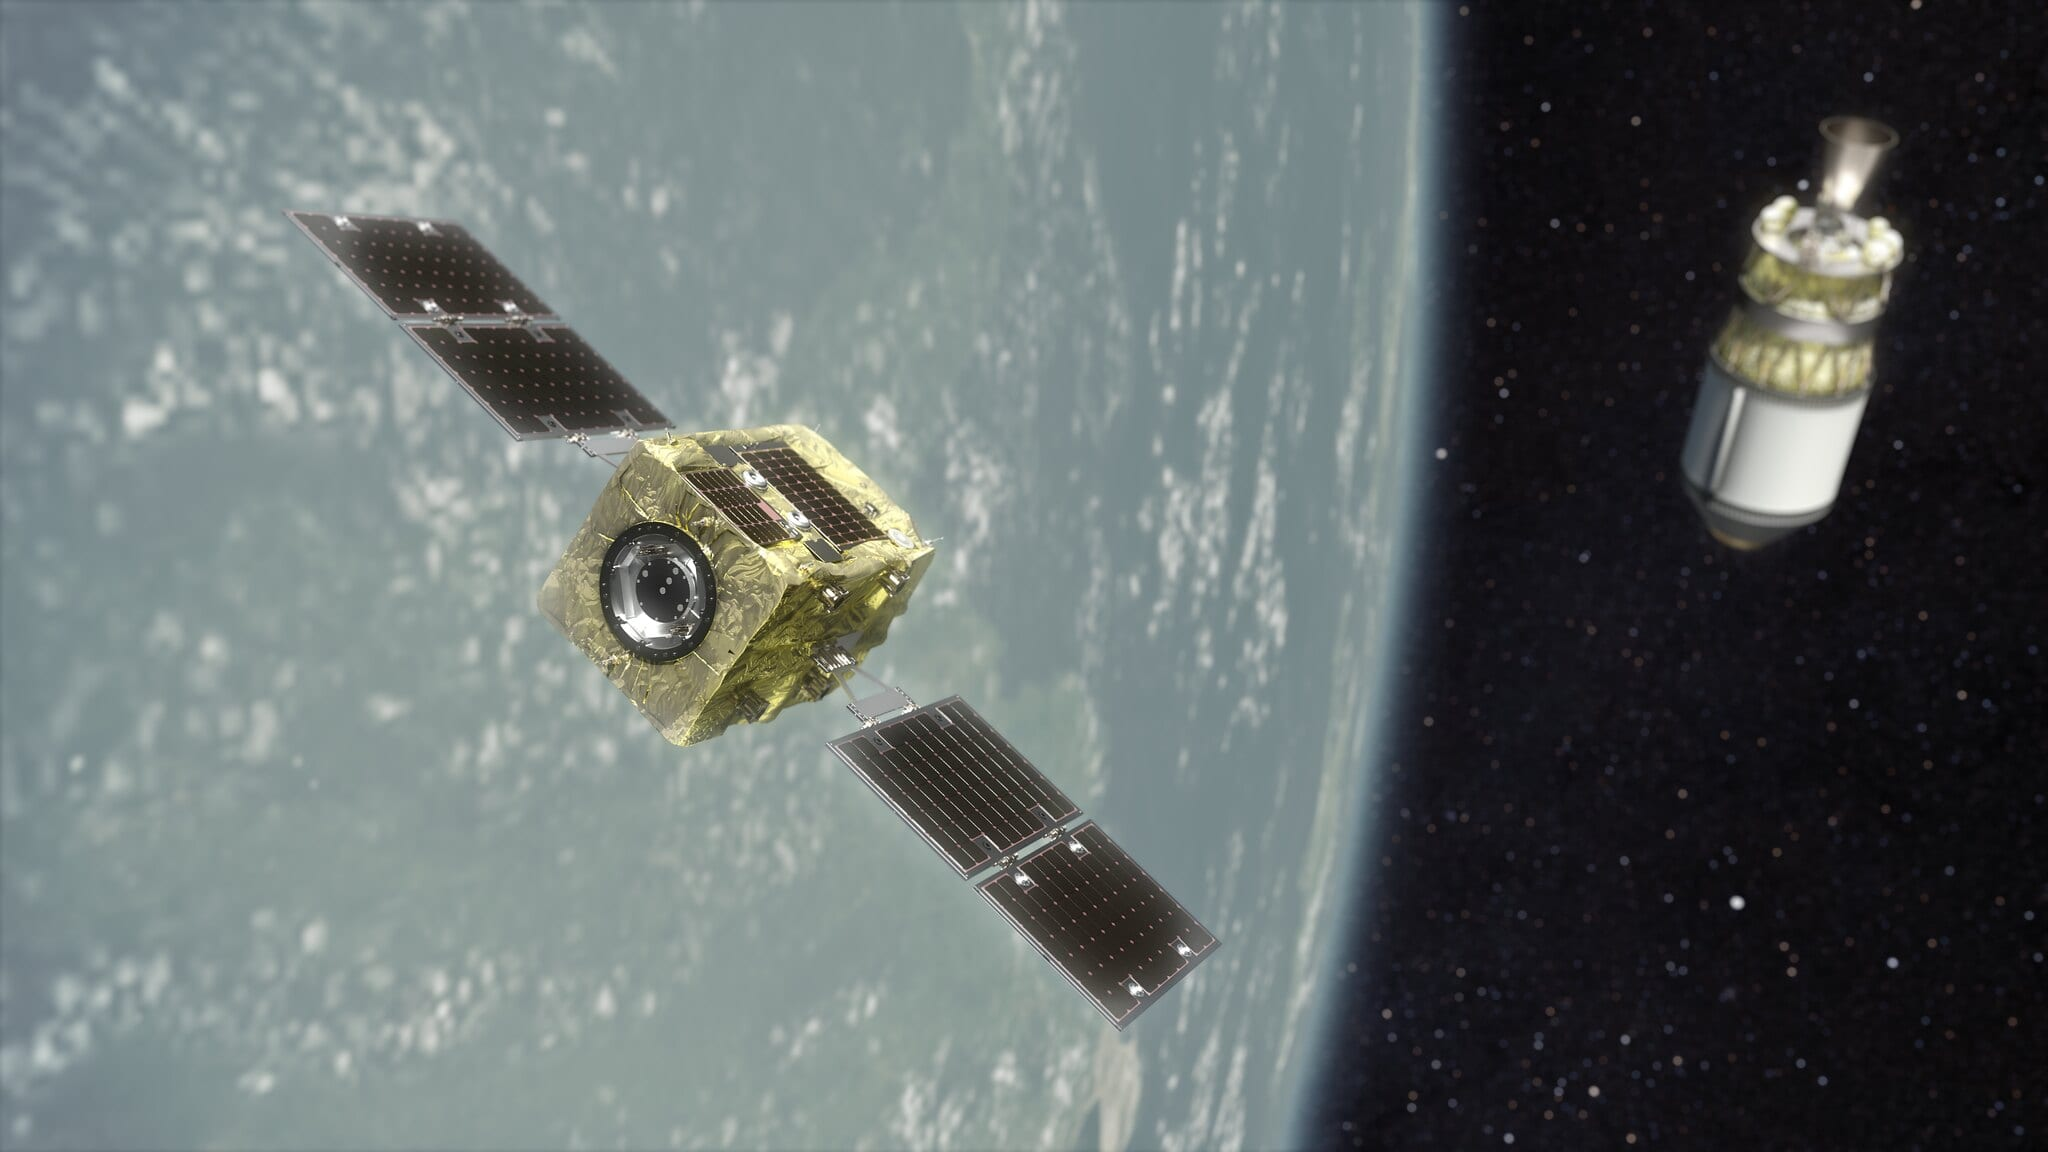 Space is Getting Very Messy With Satellites and Rockets. This Company Aims to Fix It.